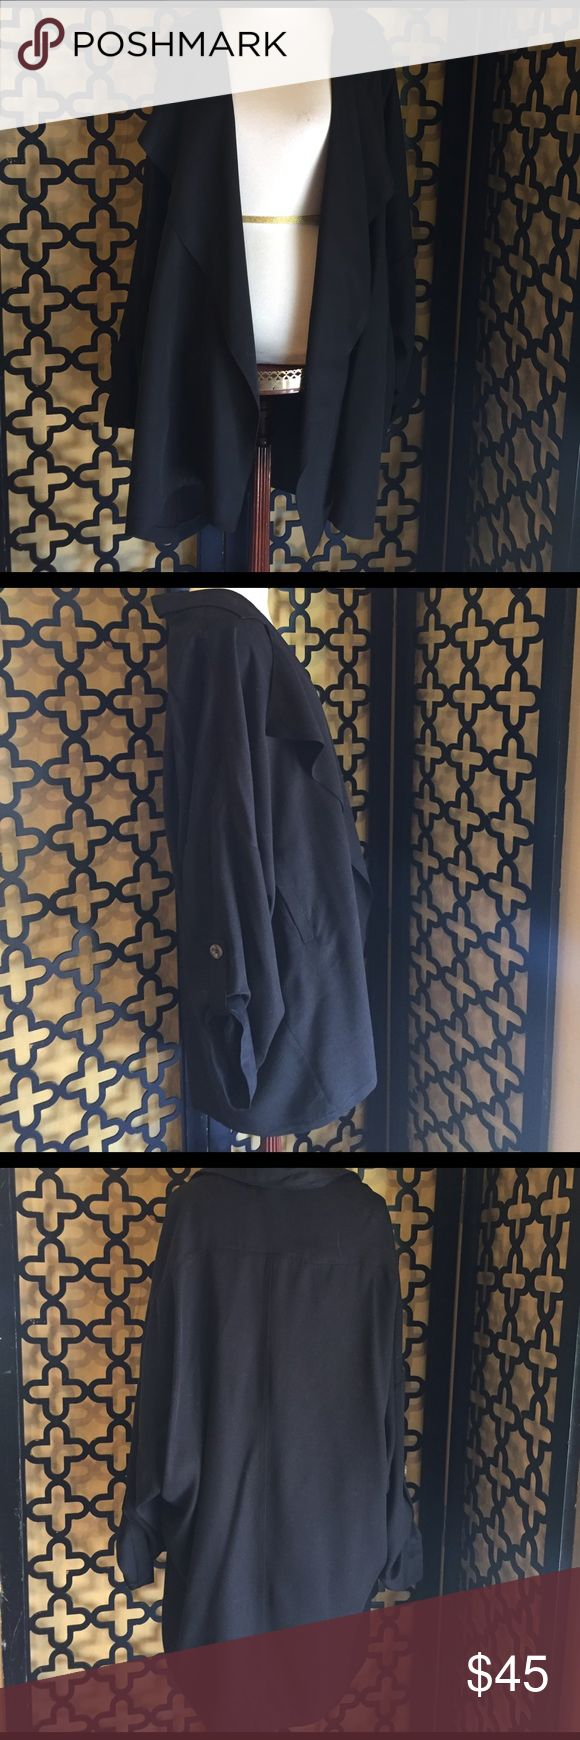 LEITH BLACK TRENCH  DUSTER EUC! No rips or stains. Recently dry cleaned. Gorgeous to add to any outfit! Not your average blazer! It is ovwr sized to add flattering length to your outfit. Measurements: 35in long, 25in sleeve length and 60in bust. Fits up to a size 14. This runs big. leith Jackets & Coats Blazers